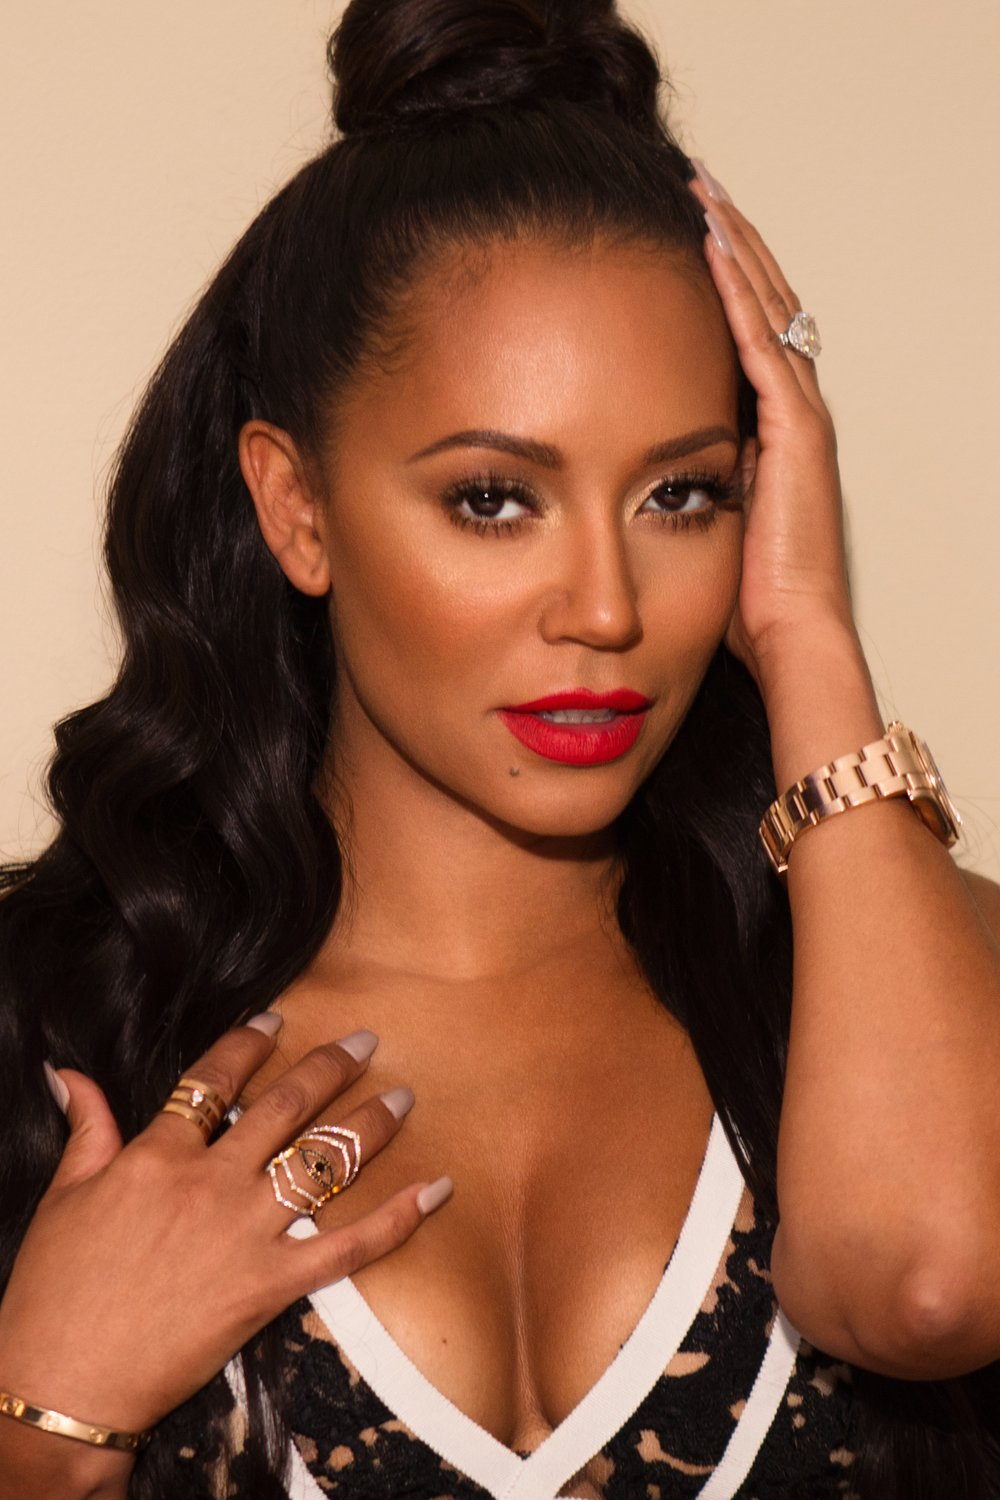 Mel B  image - supplied/Seven